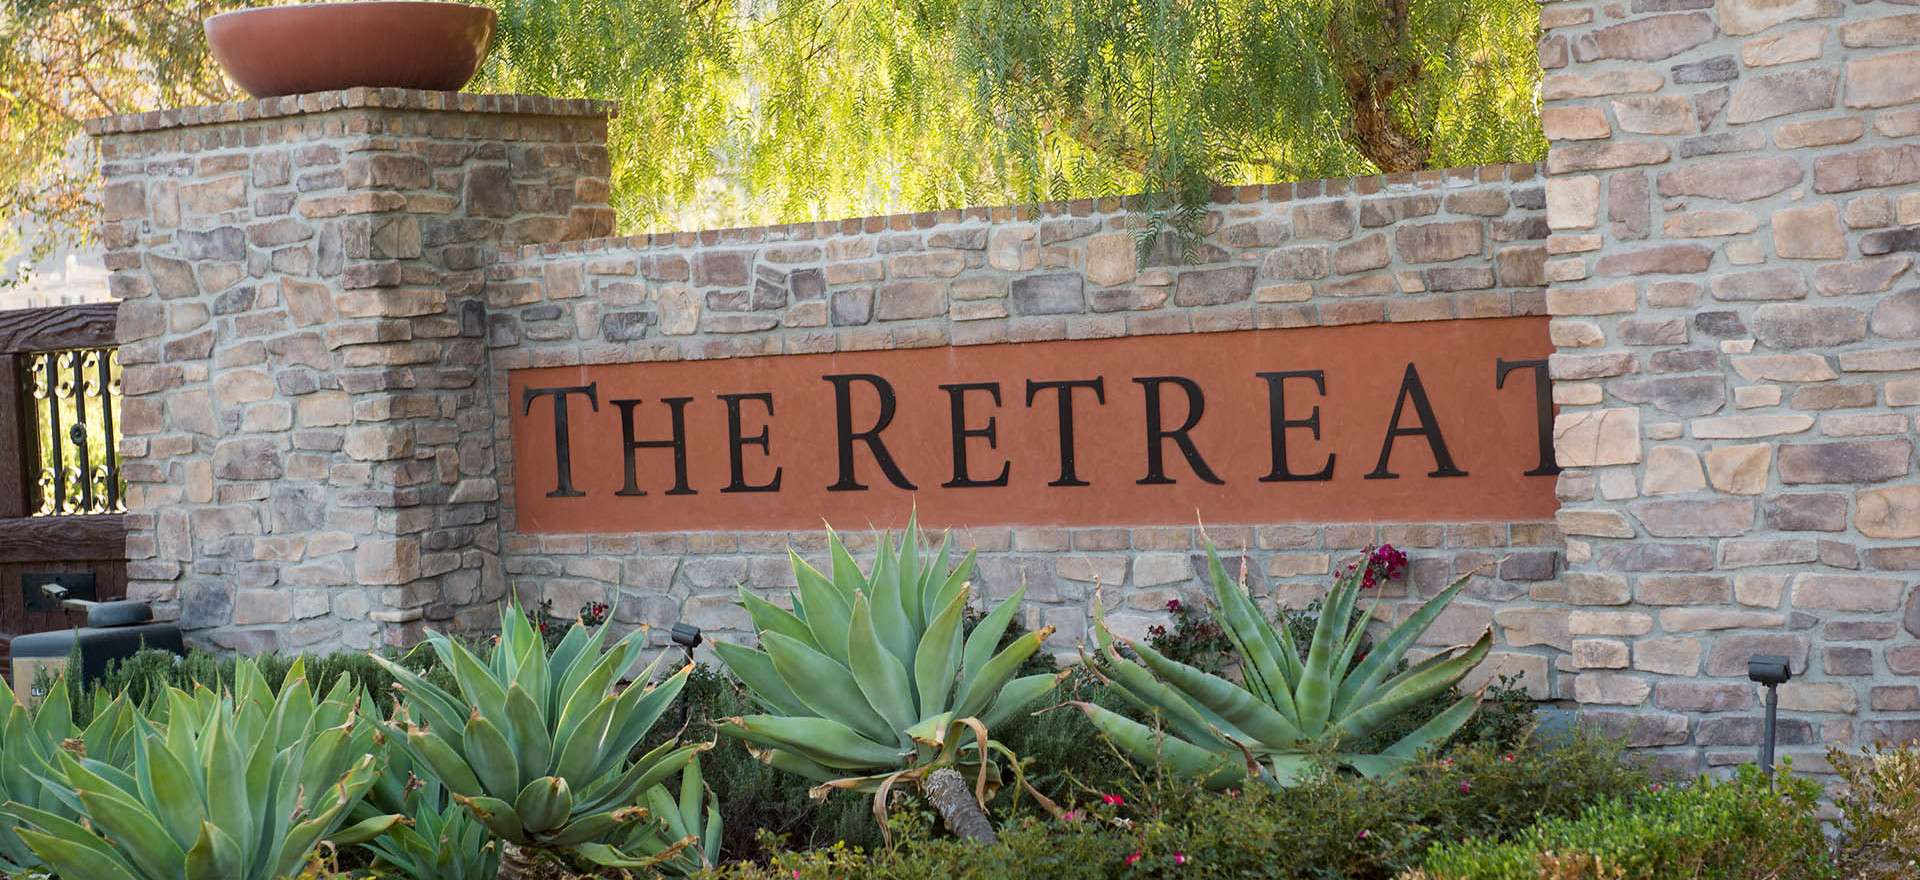 15-Wedgewood-Weddings-The-Retreat-Wedding-Venue-Gated-Entrance_72dpi.jpg